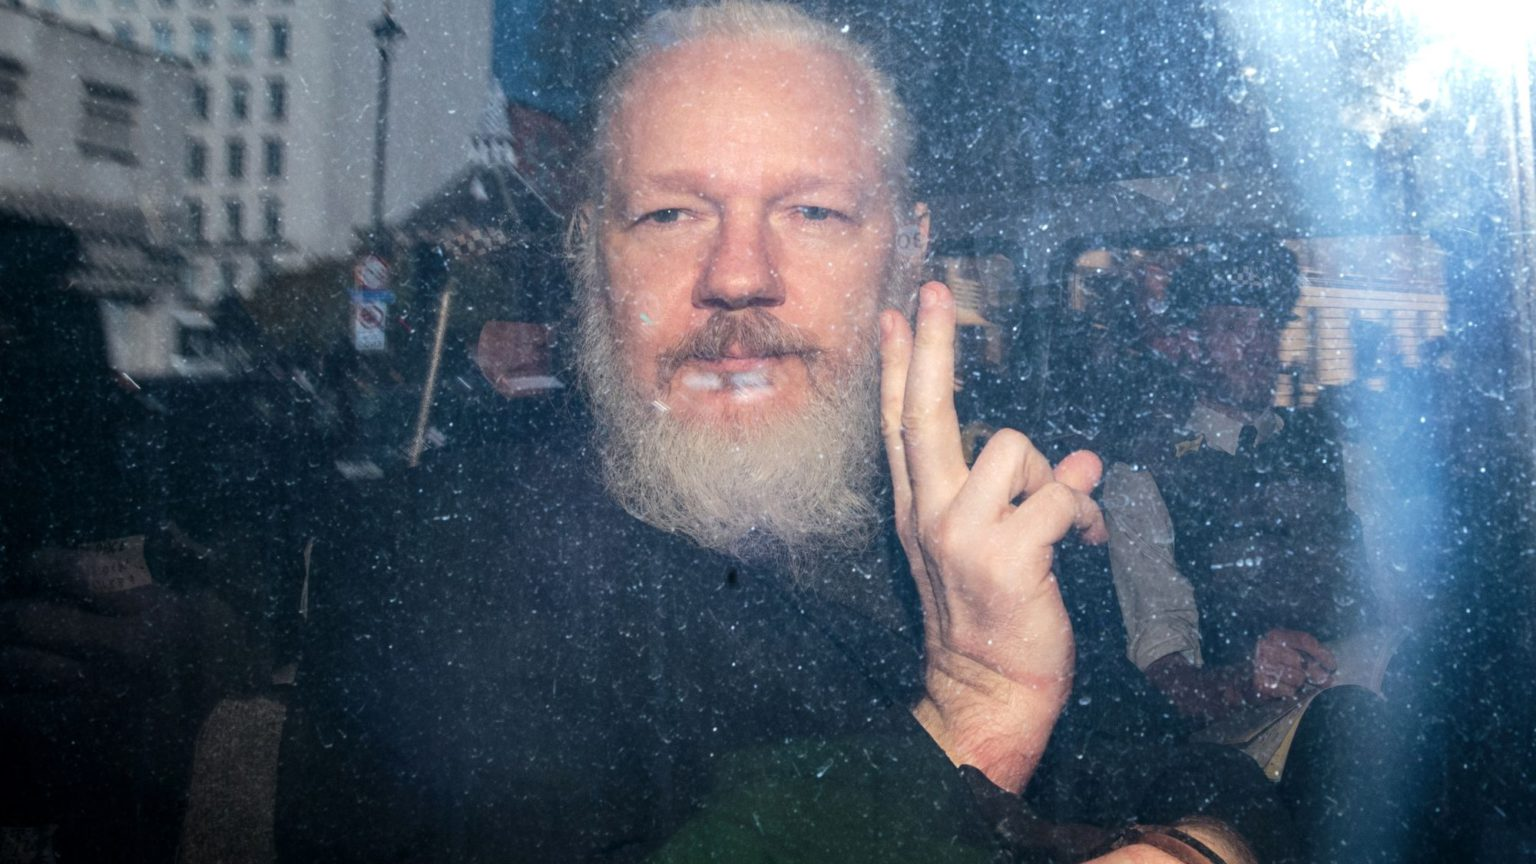 Julian Assange: the press-freedom trial of the century